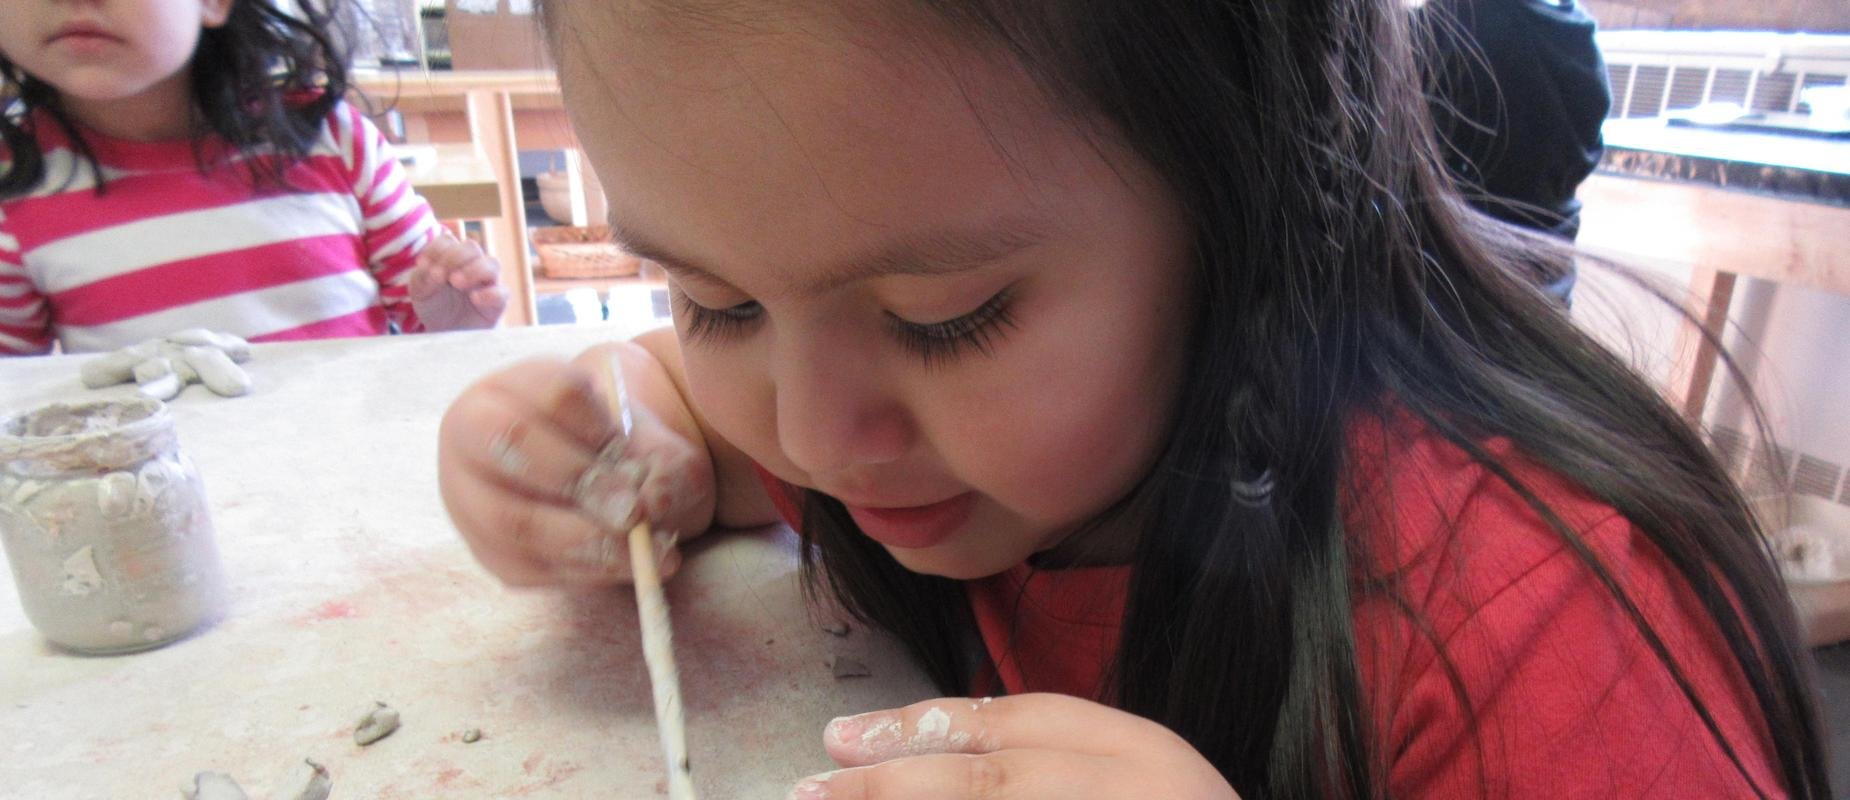 girl creating with clay